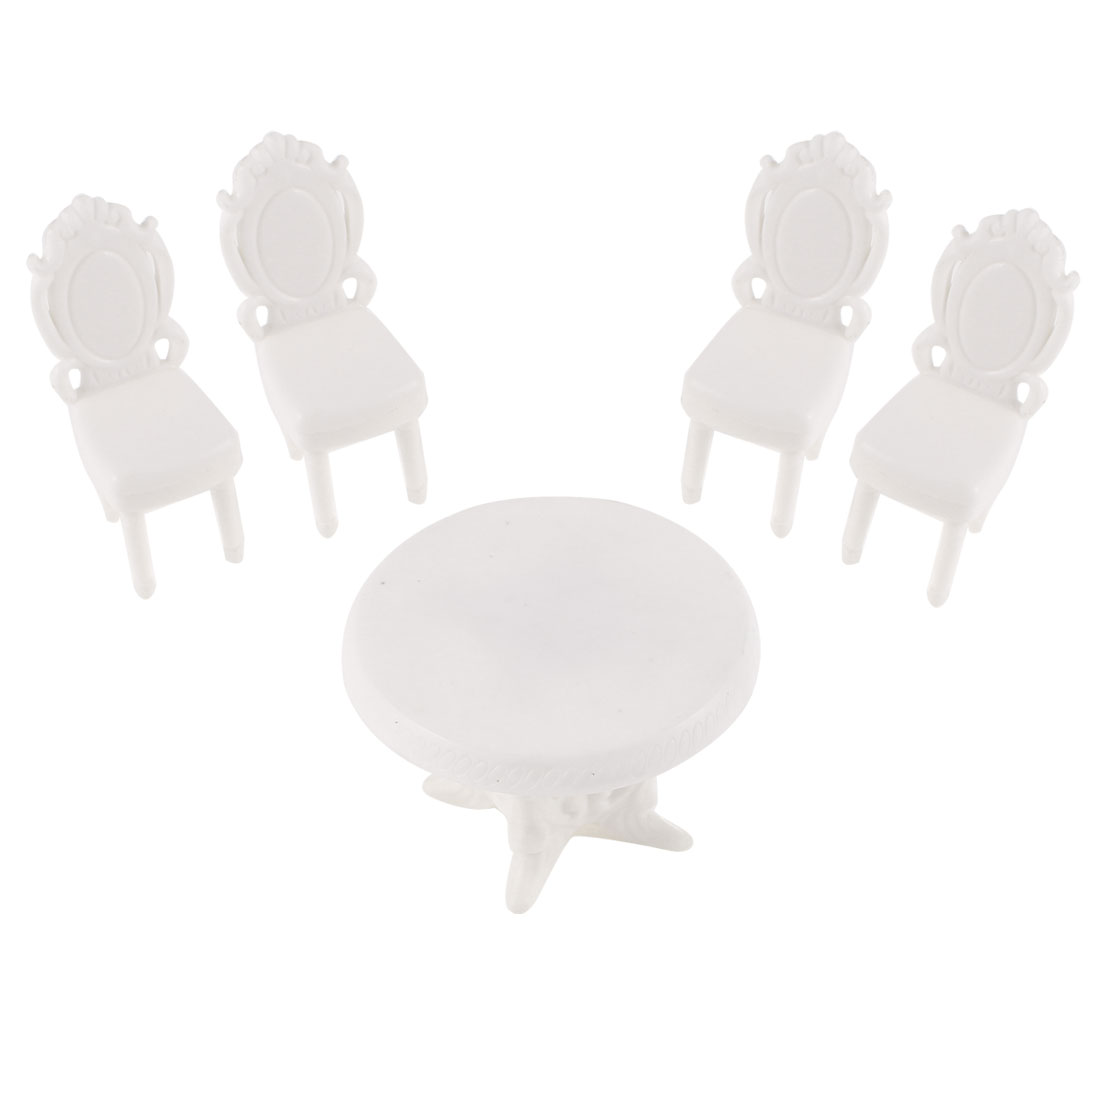 5 Pcs Unpainted Model Round Table Chairs for Indoor Living Room Layout